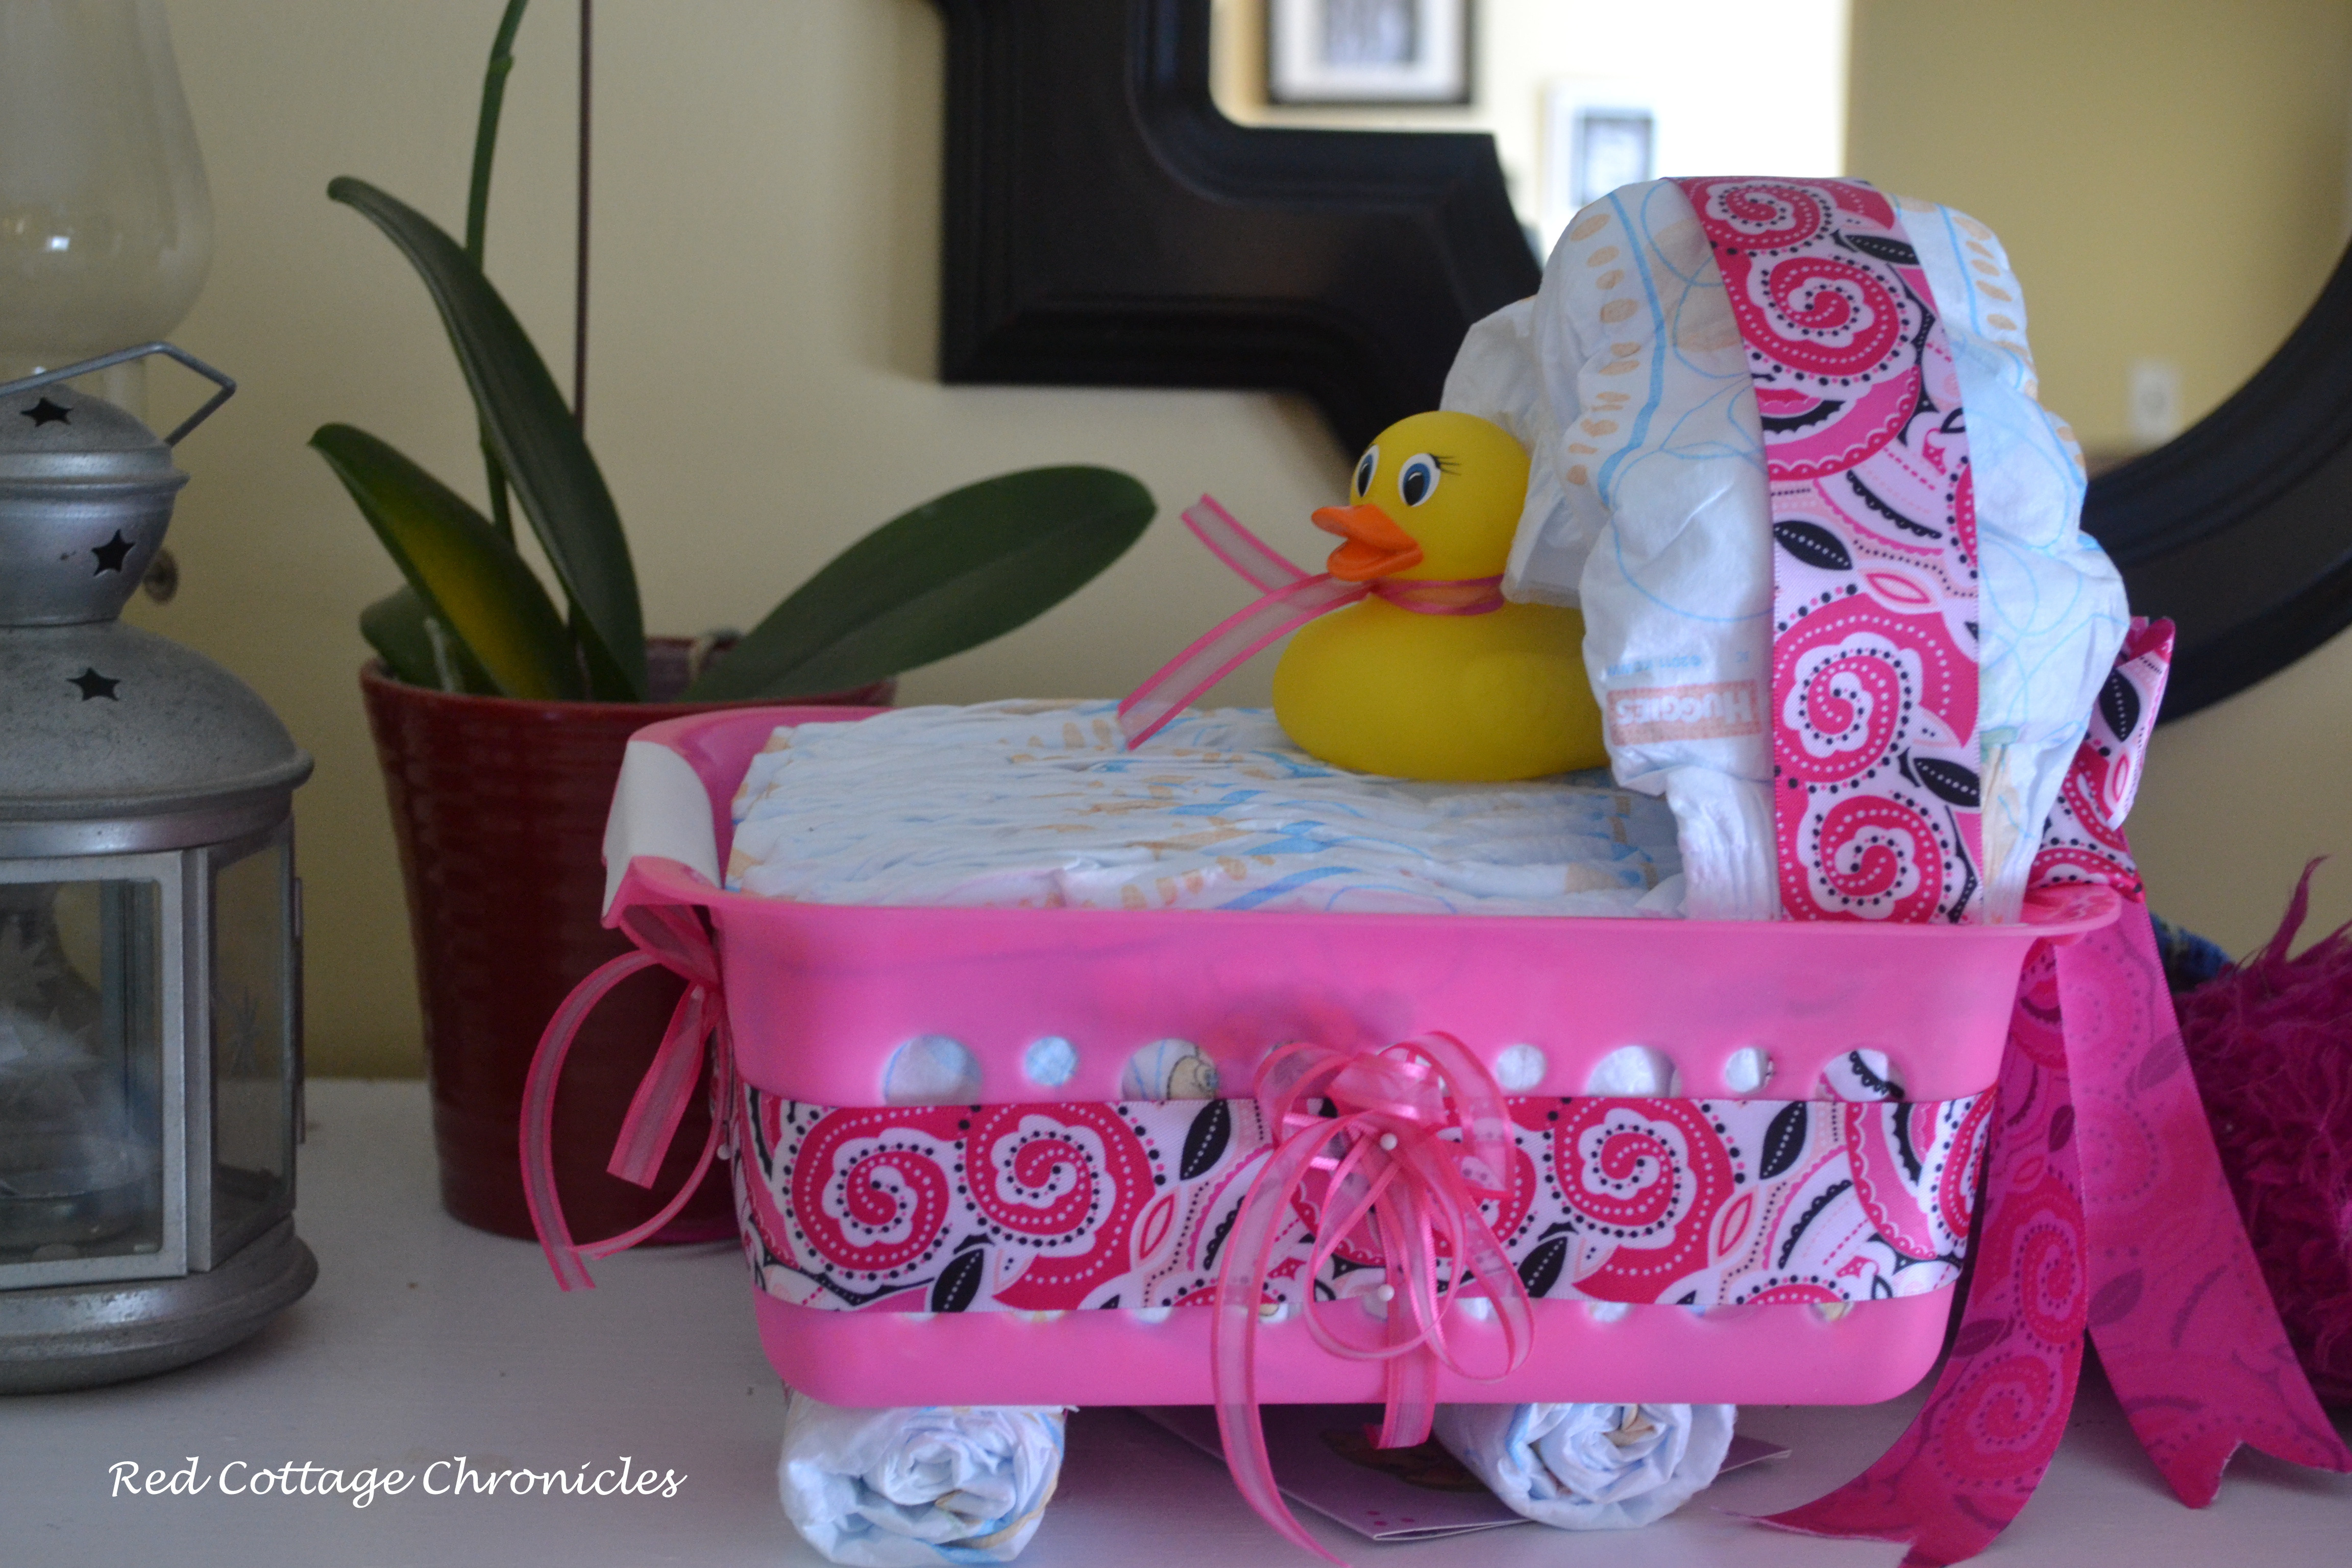 Baby Shower Gift Ideas For A Girl  This Baby Shower Gift Idea is a practical t any new mom